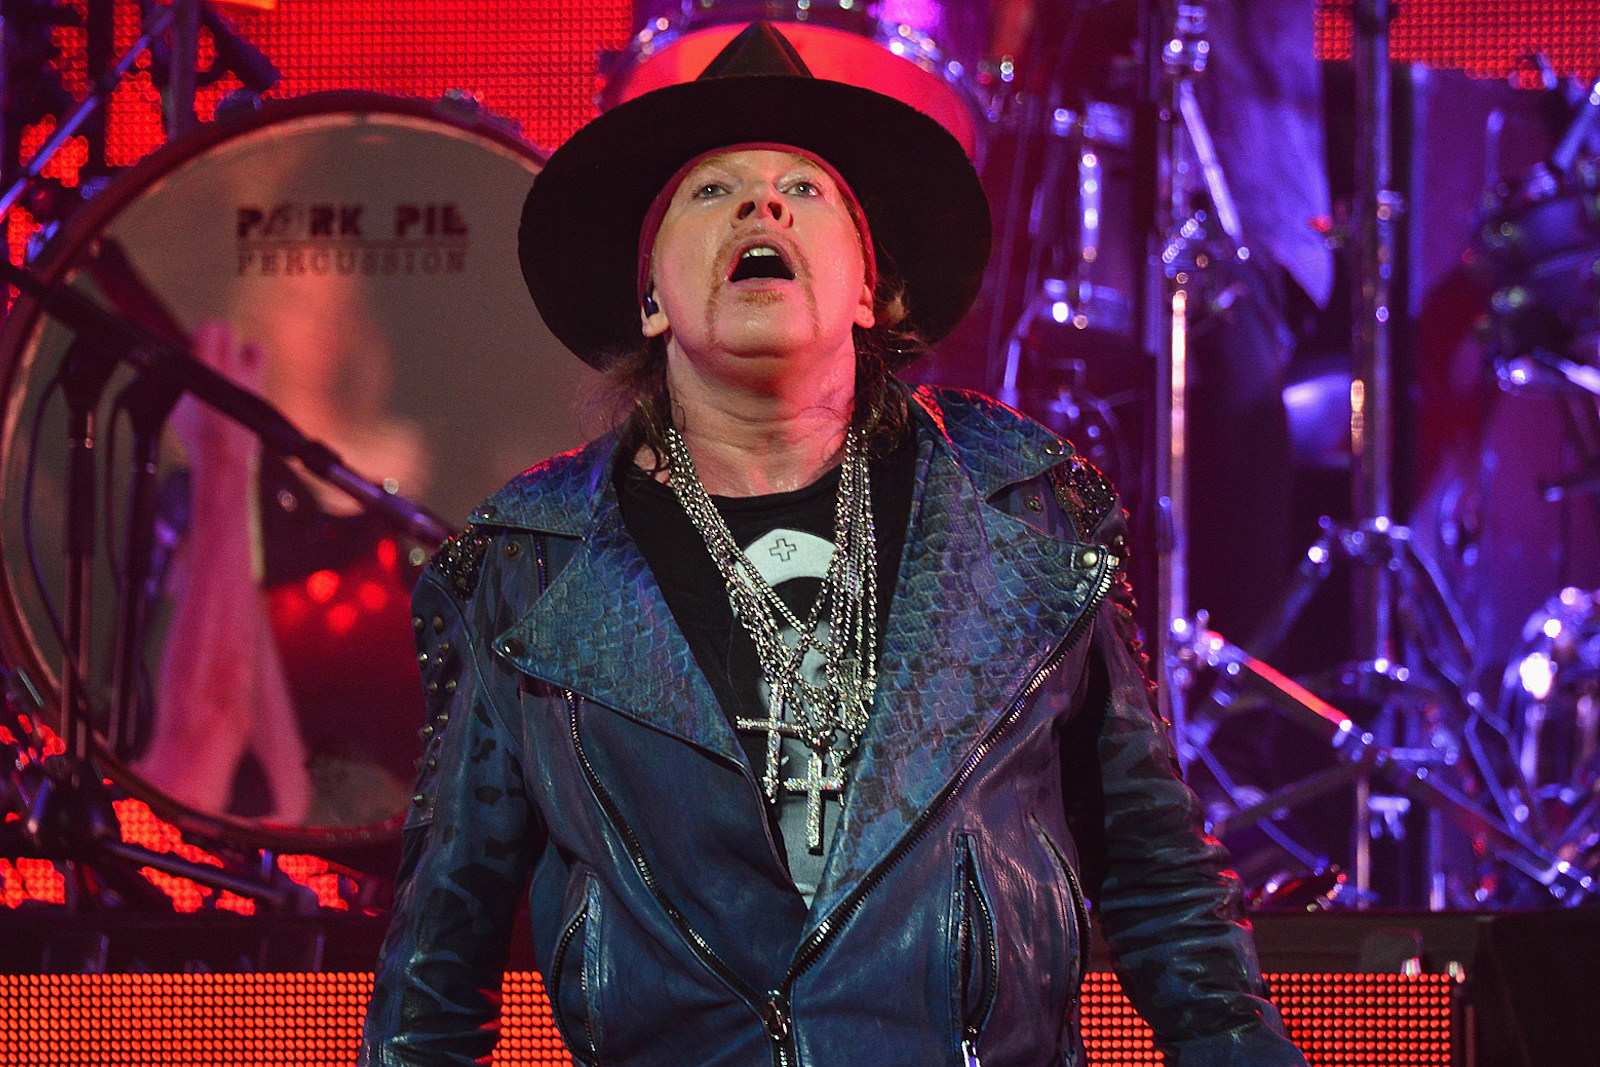 Axl Rose Was 'Throwing Up' During Guns N' Roses' Chicago Concert